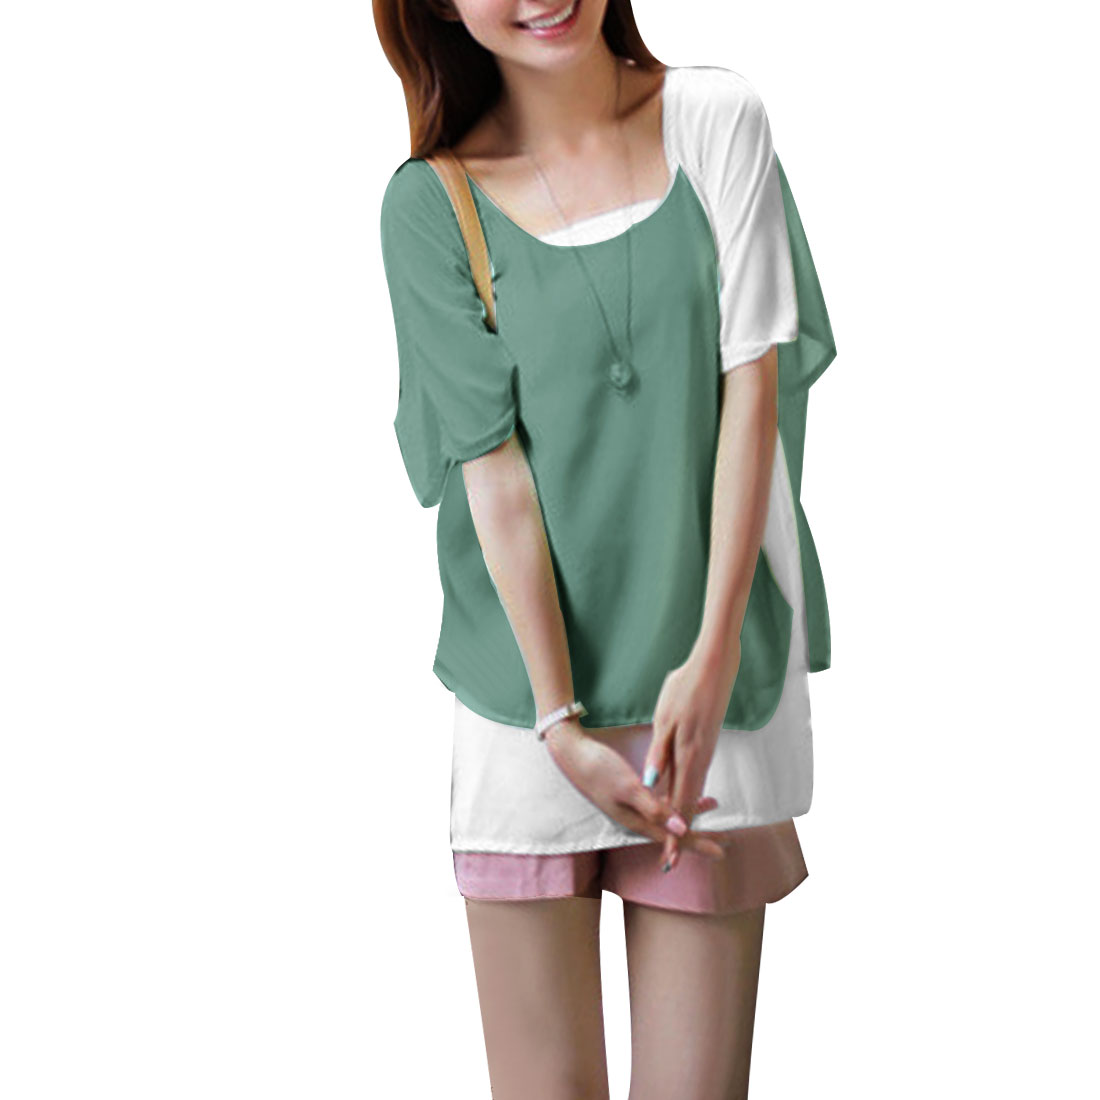 Ladies Light Green Irregular Hem Two Layer Chiffon Panel Blouse XS